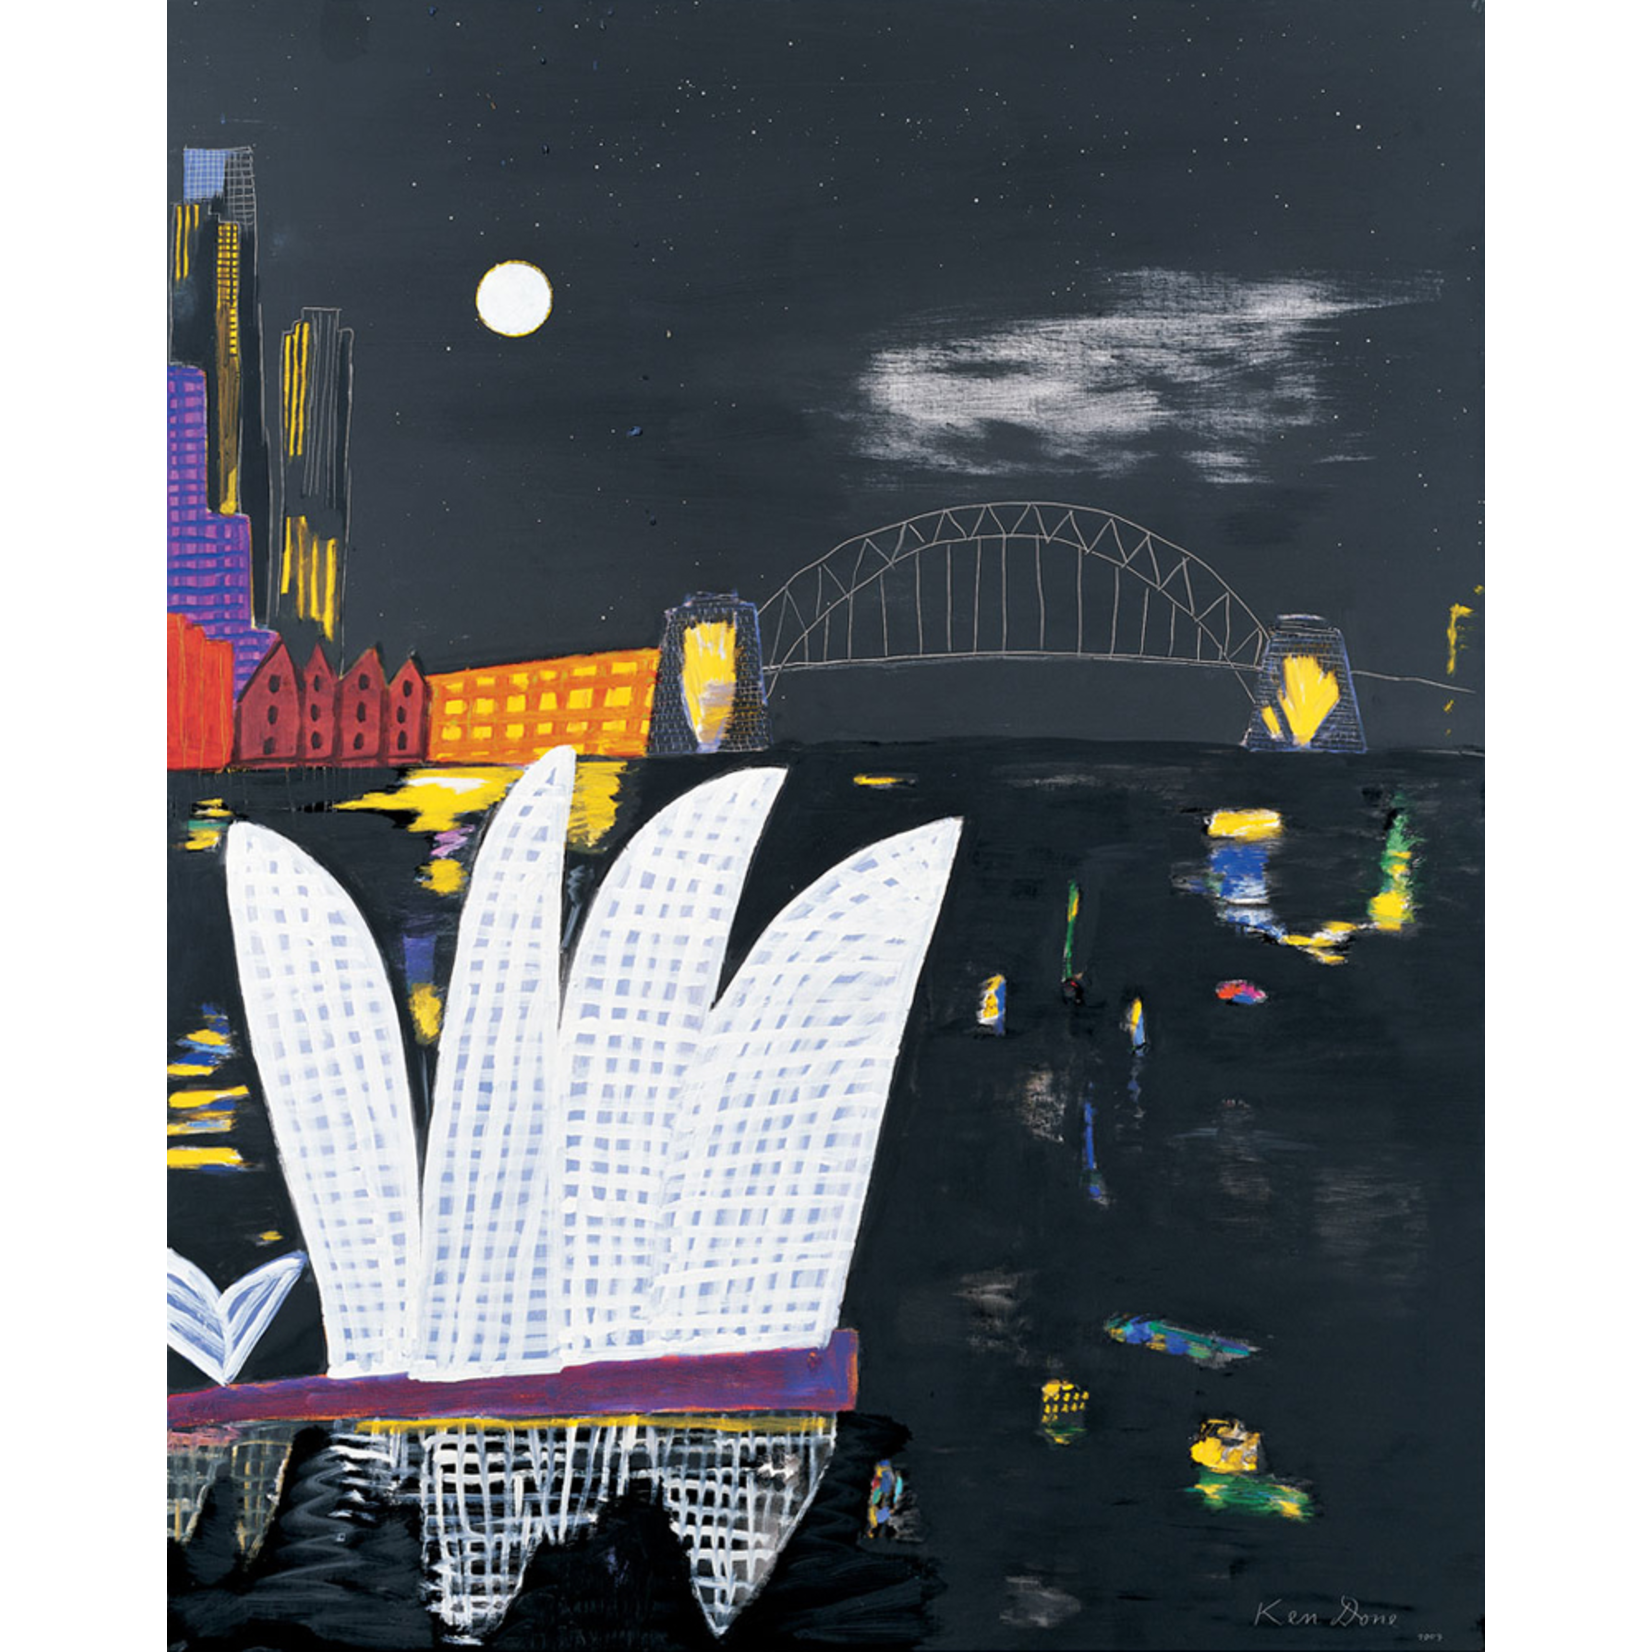 Limited Edition Prints Opera House moon, 2004